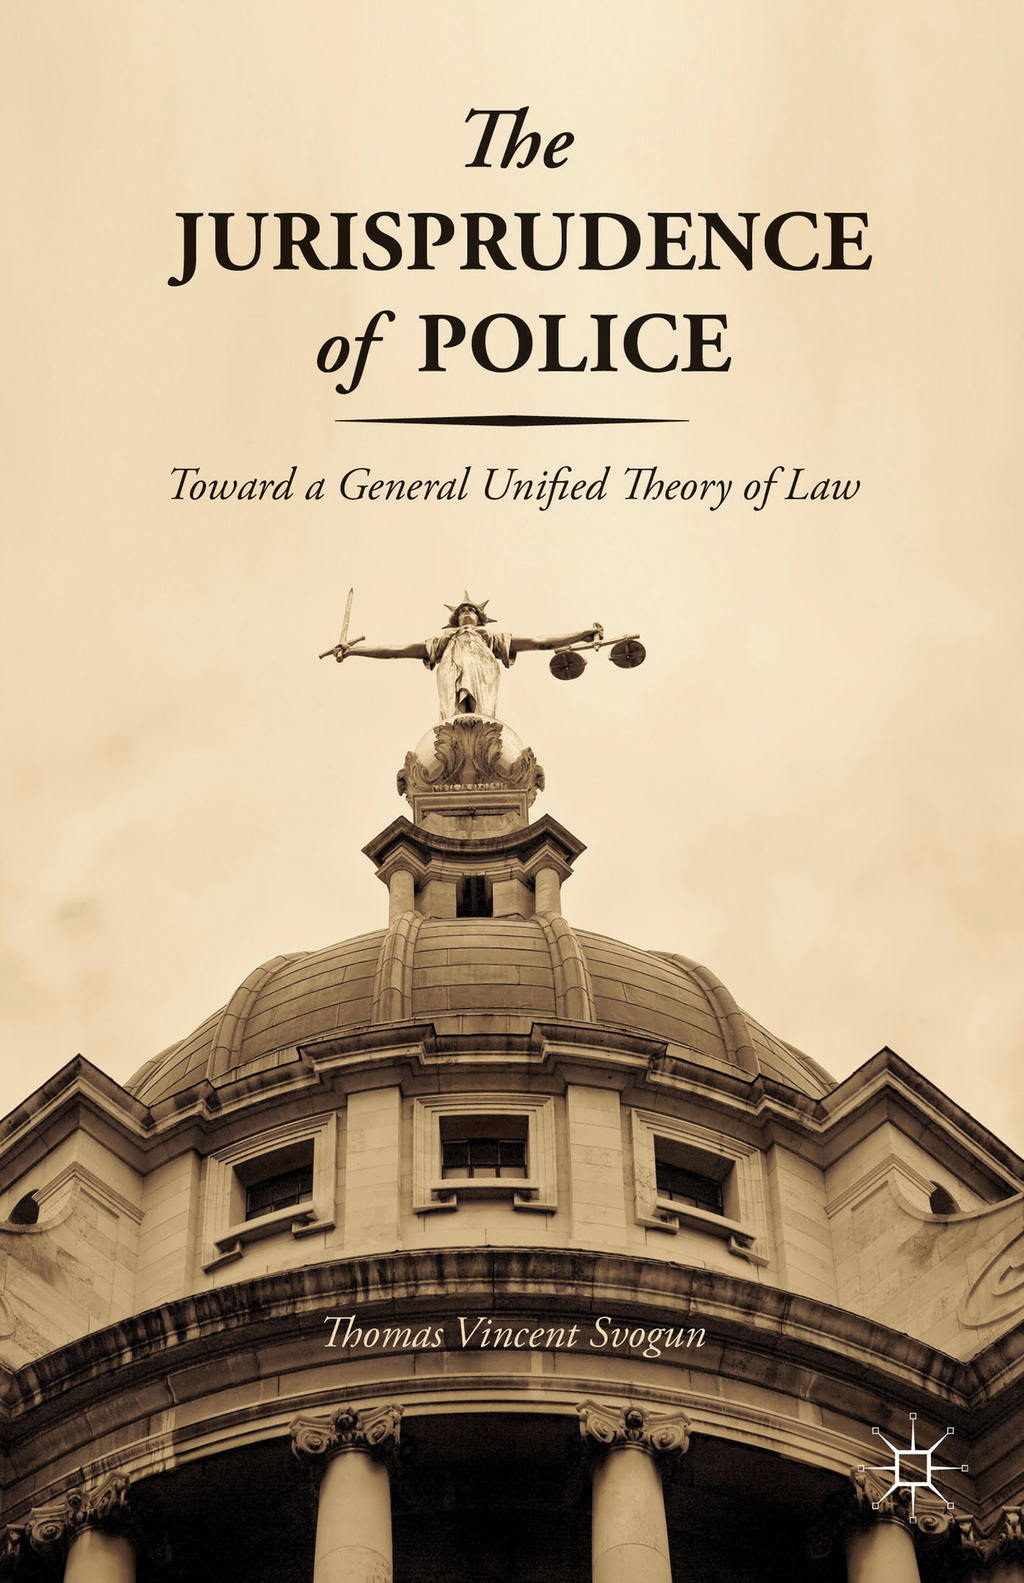 The Jurisprudence of Police Toward a General Unified Theory of Law